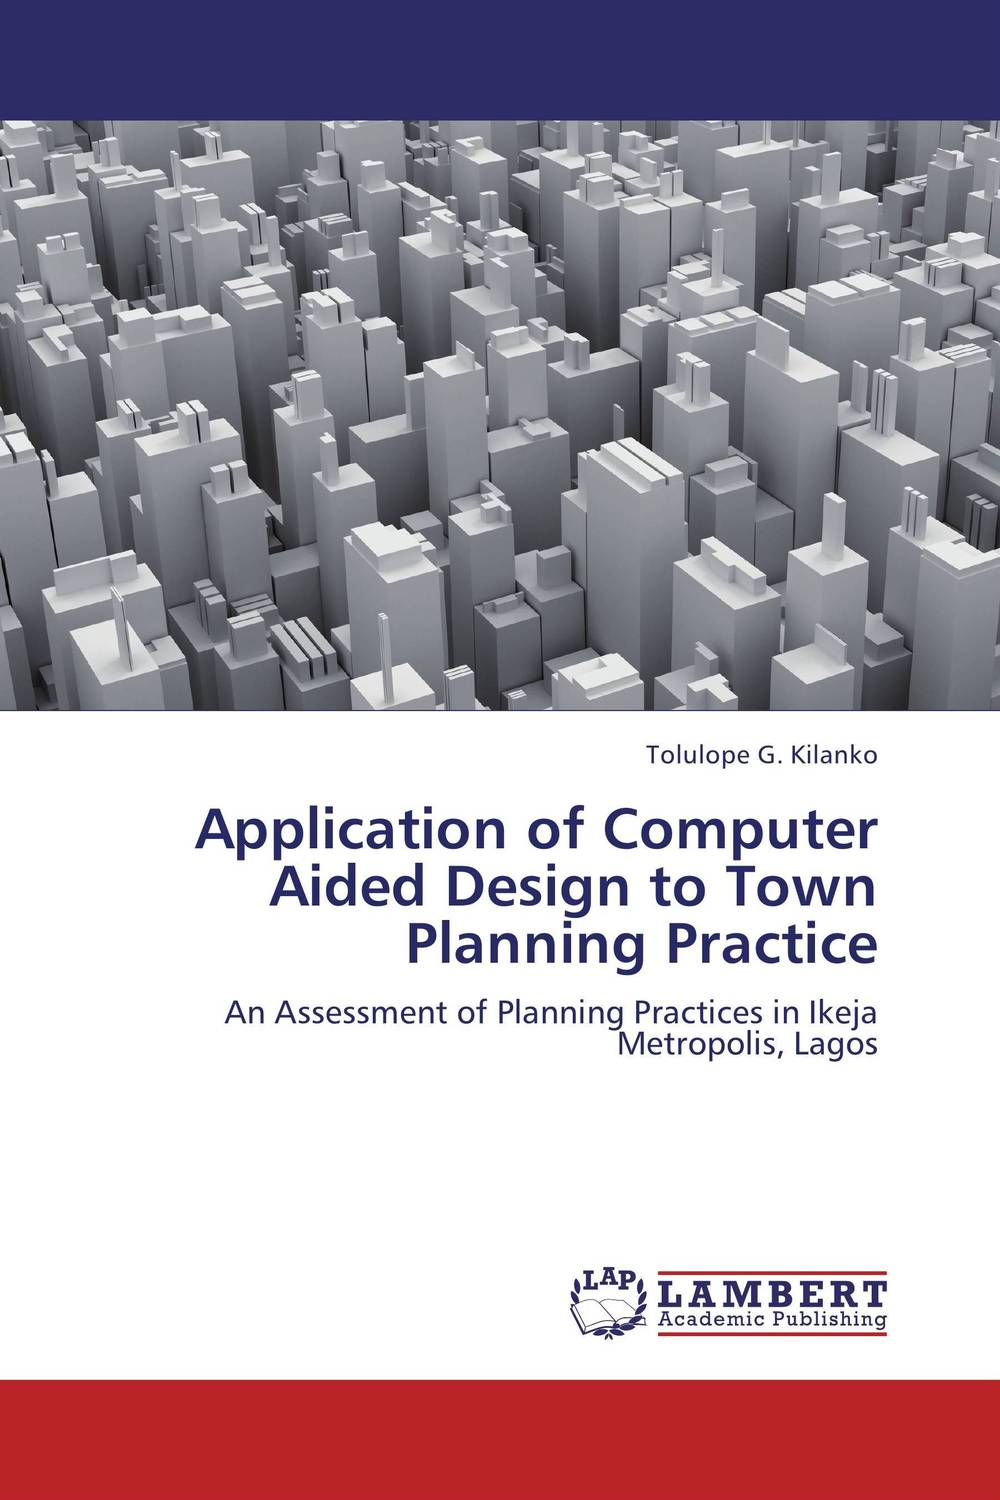 Application of Computer Aided Design to Town Planning Practice franke bibliotheca cardiologica ballistocardiogra phy research and computer diagnosis